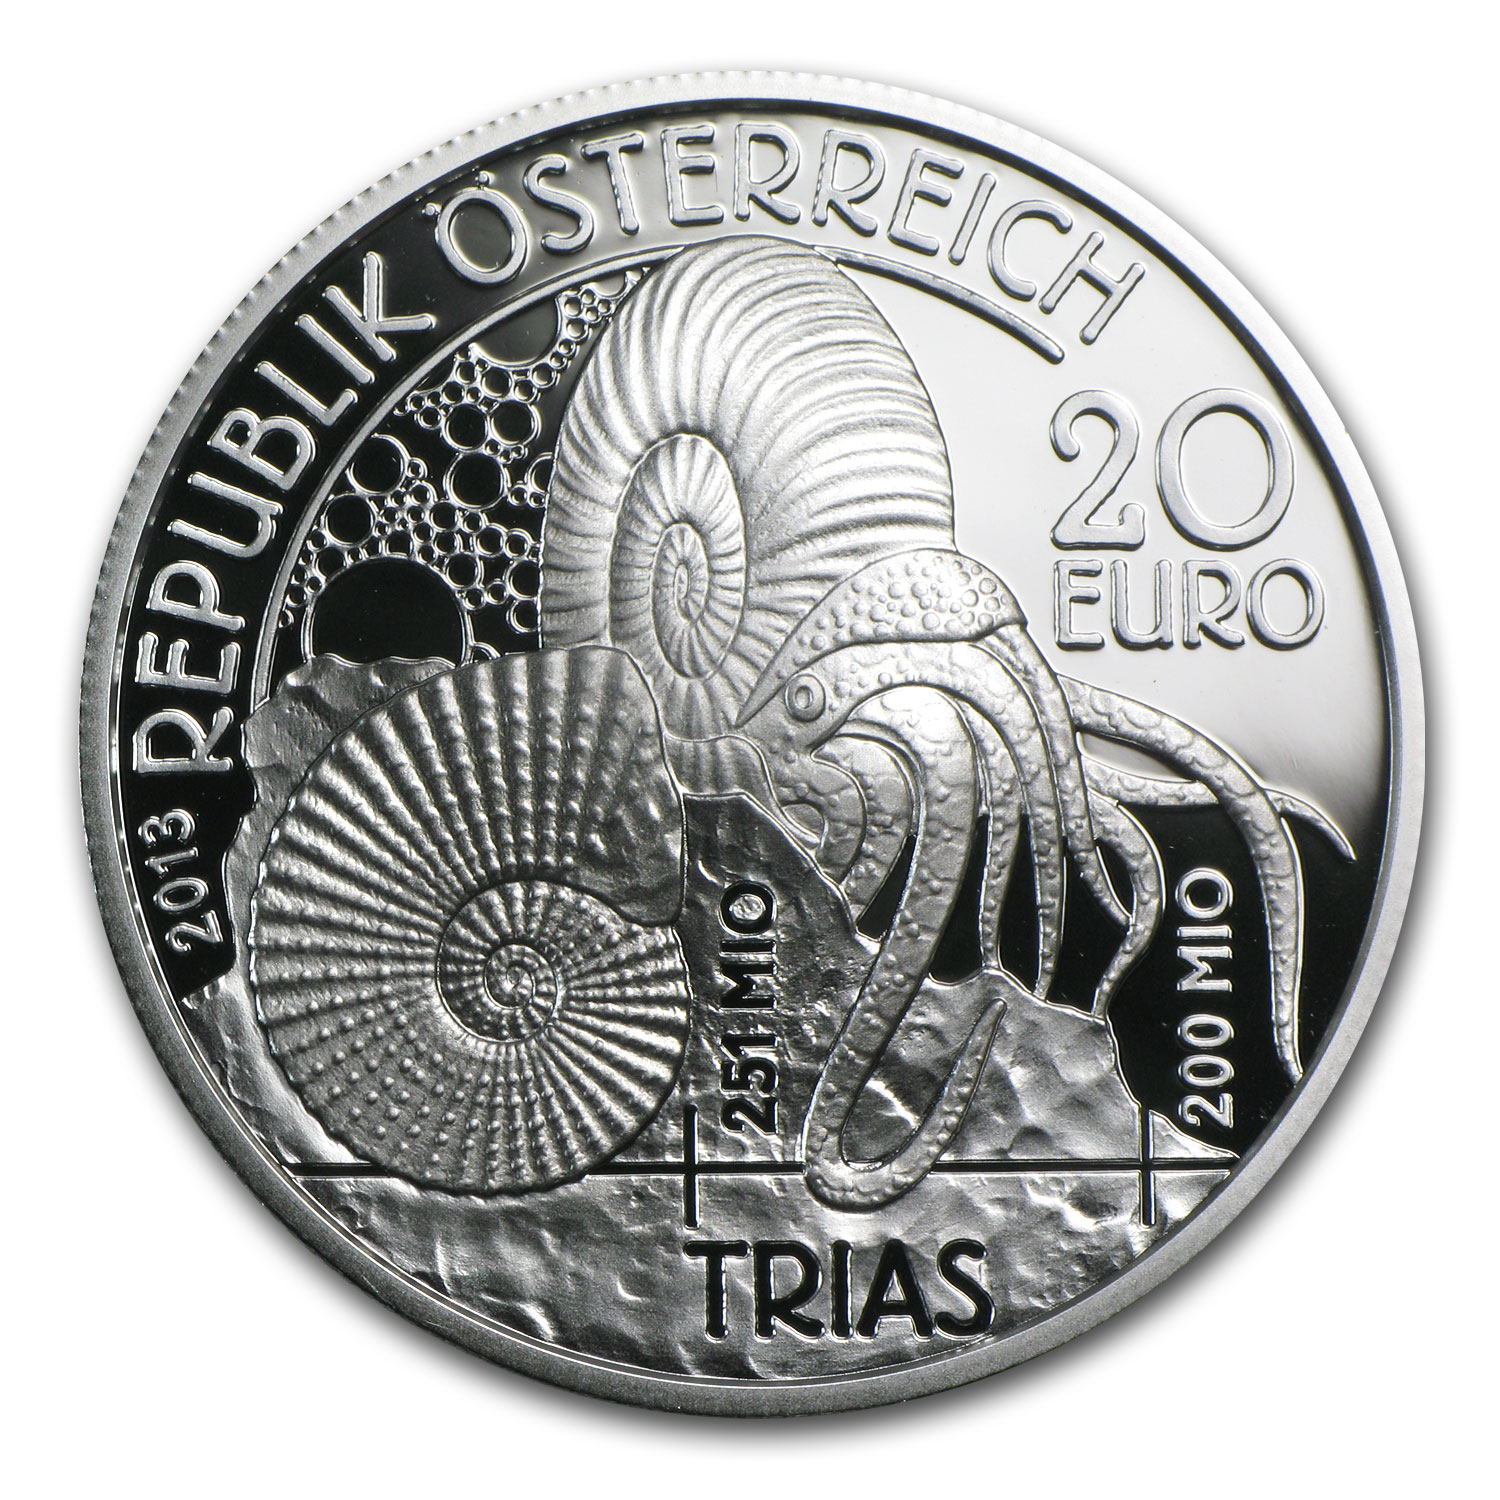 2013 Austria Silver €20 Life in the Water Proof: Triassic